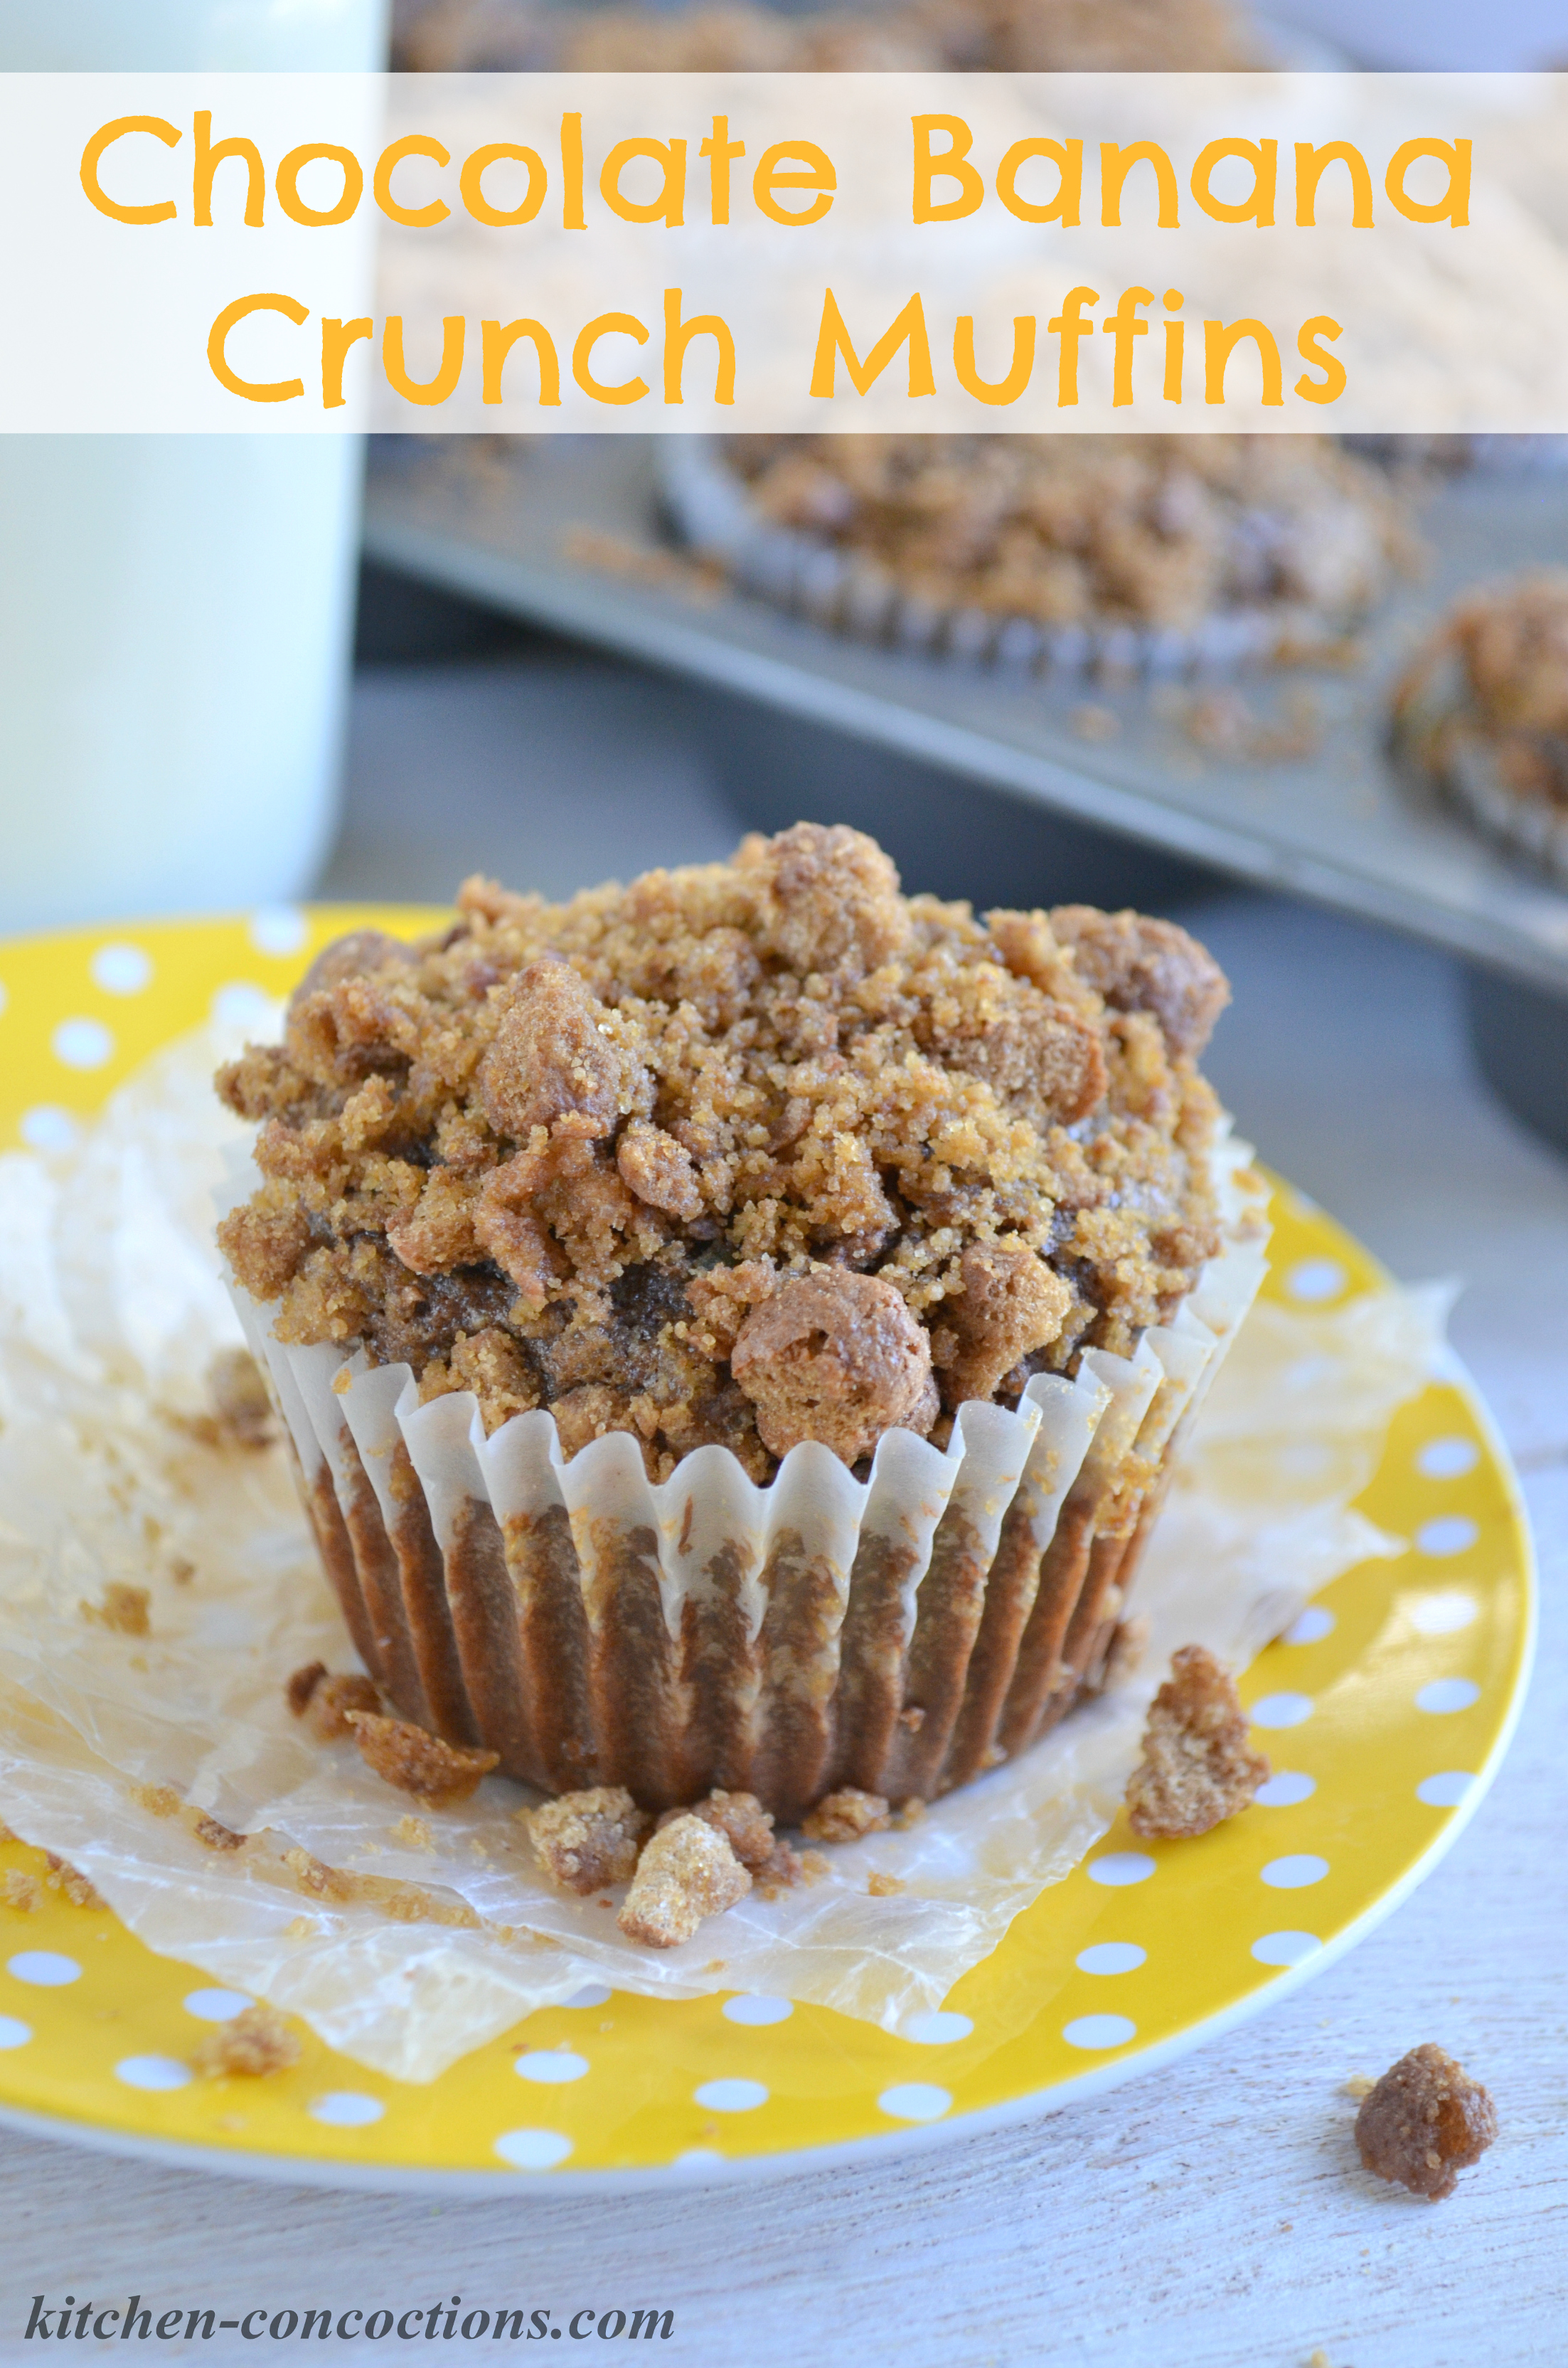 Chocolate Banana Crunch Muffins Recipe- Kitchen Concoctions final